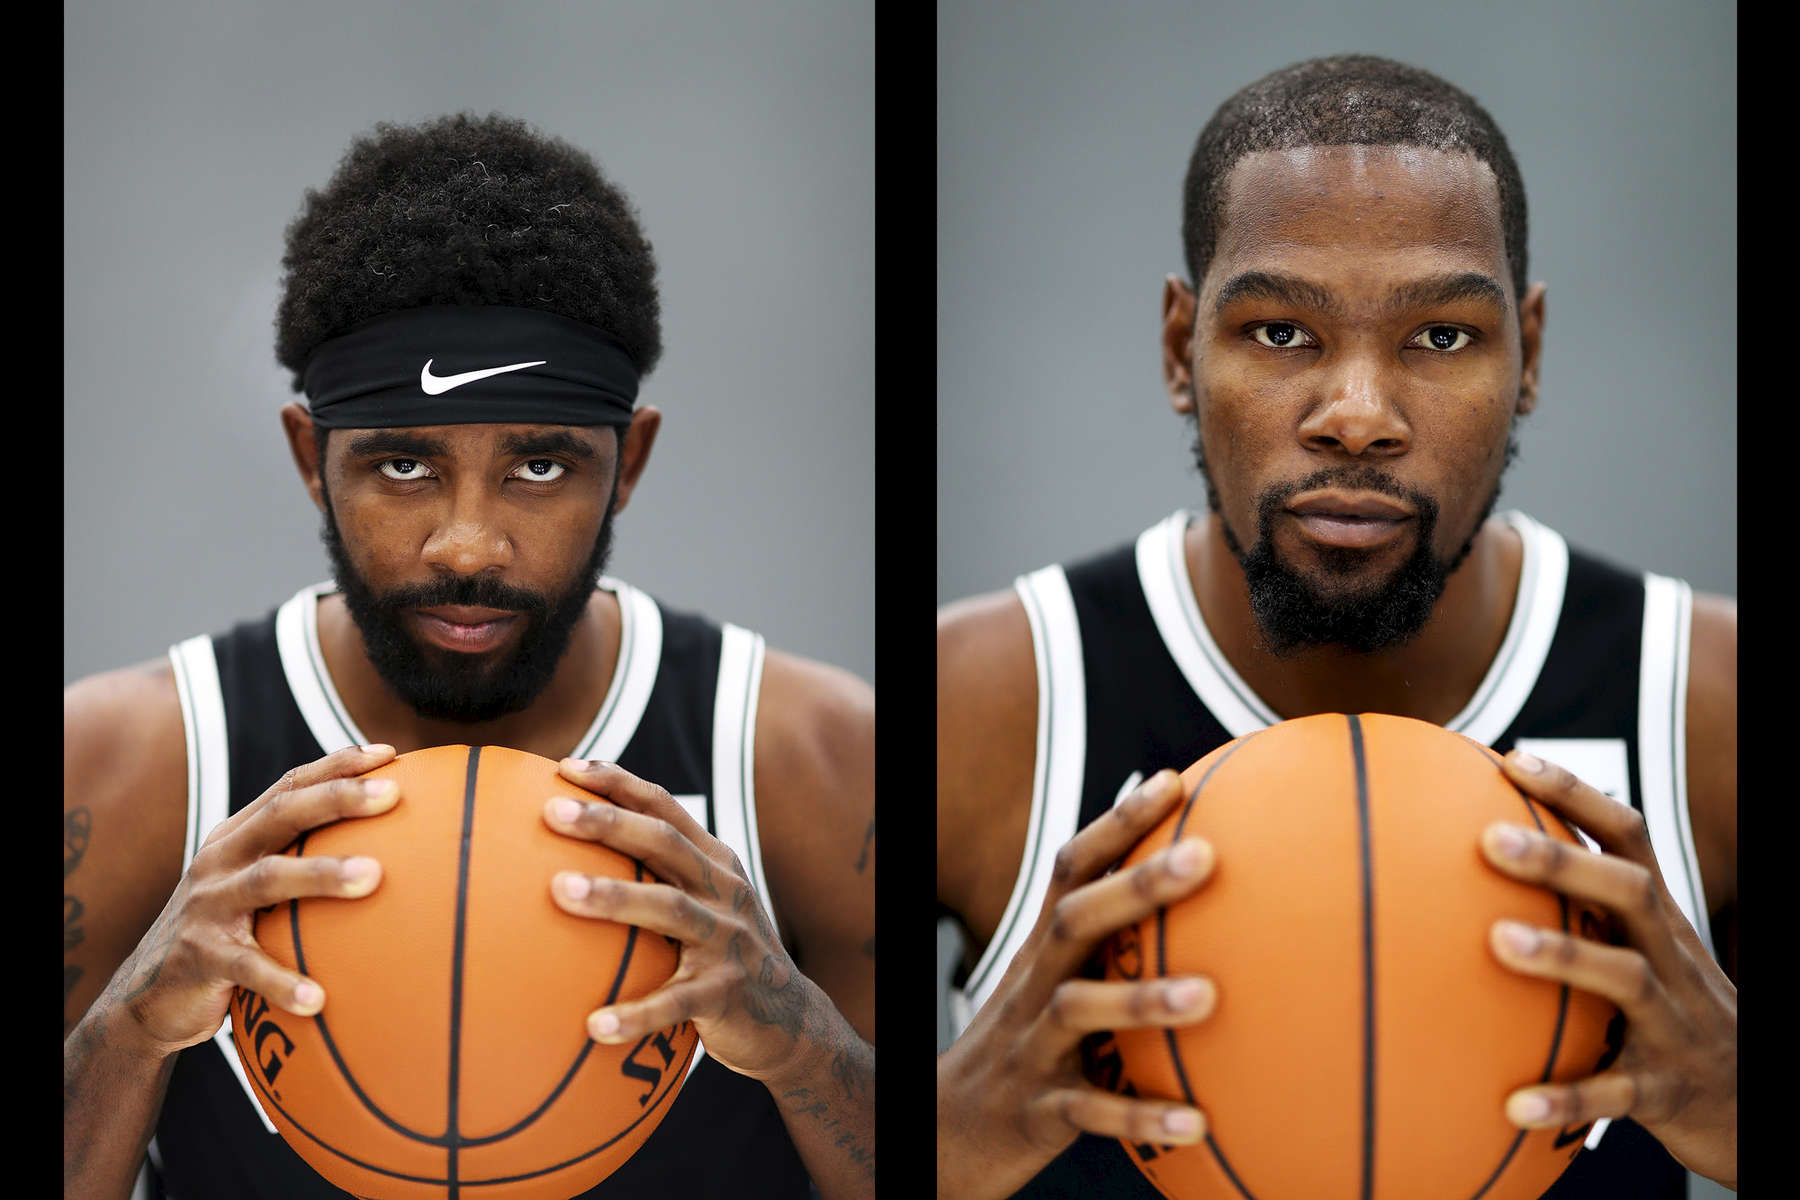 Kyrie Irving and Kevin Durant of the Brooklyn Nets pose for a portrait during Media Day at HSS Training Center on September 27, 2019 in New York City.